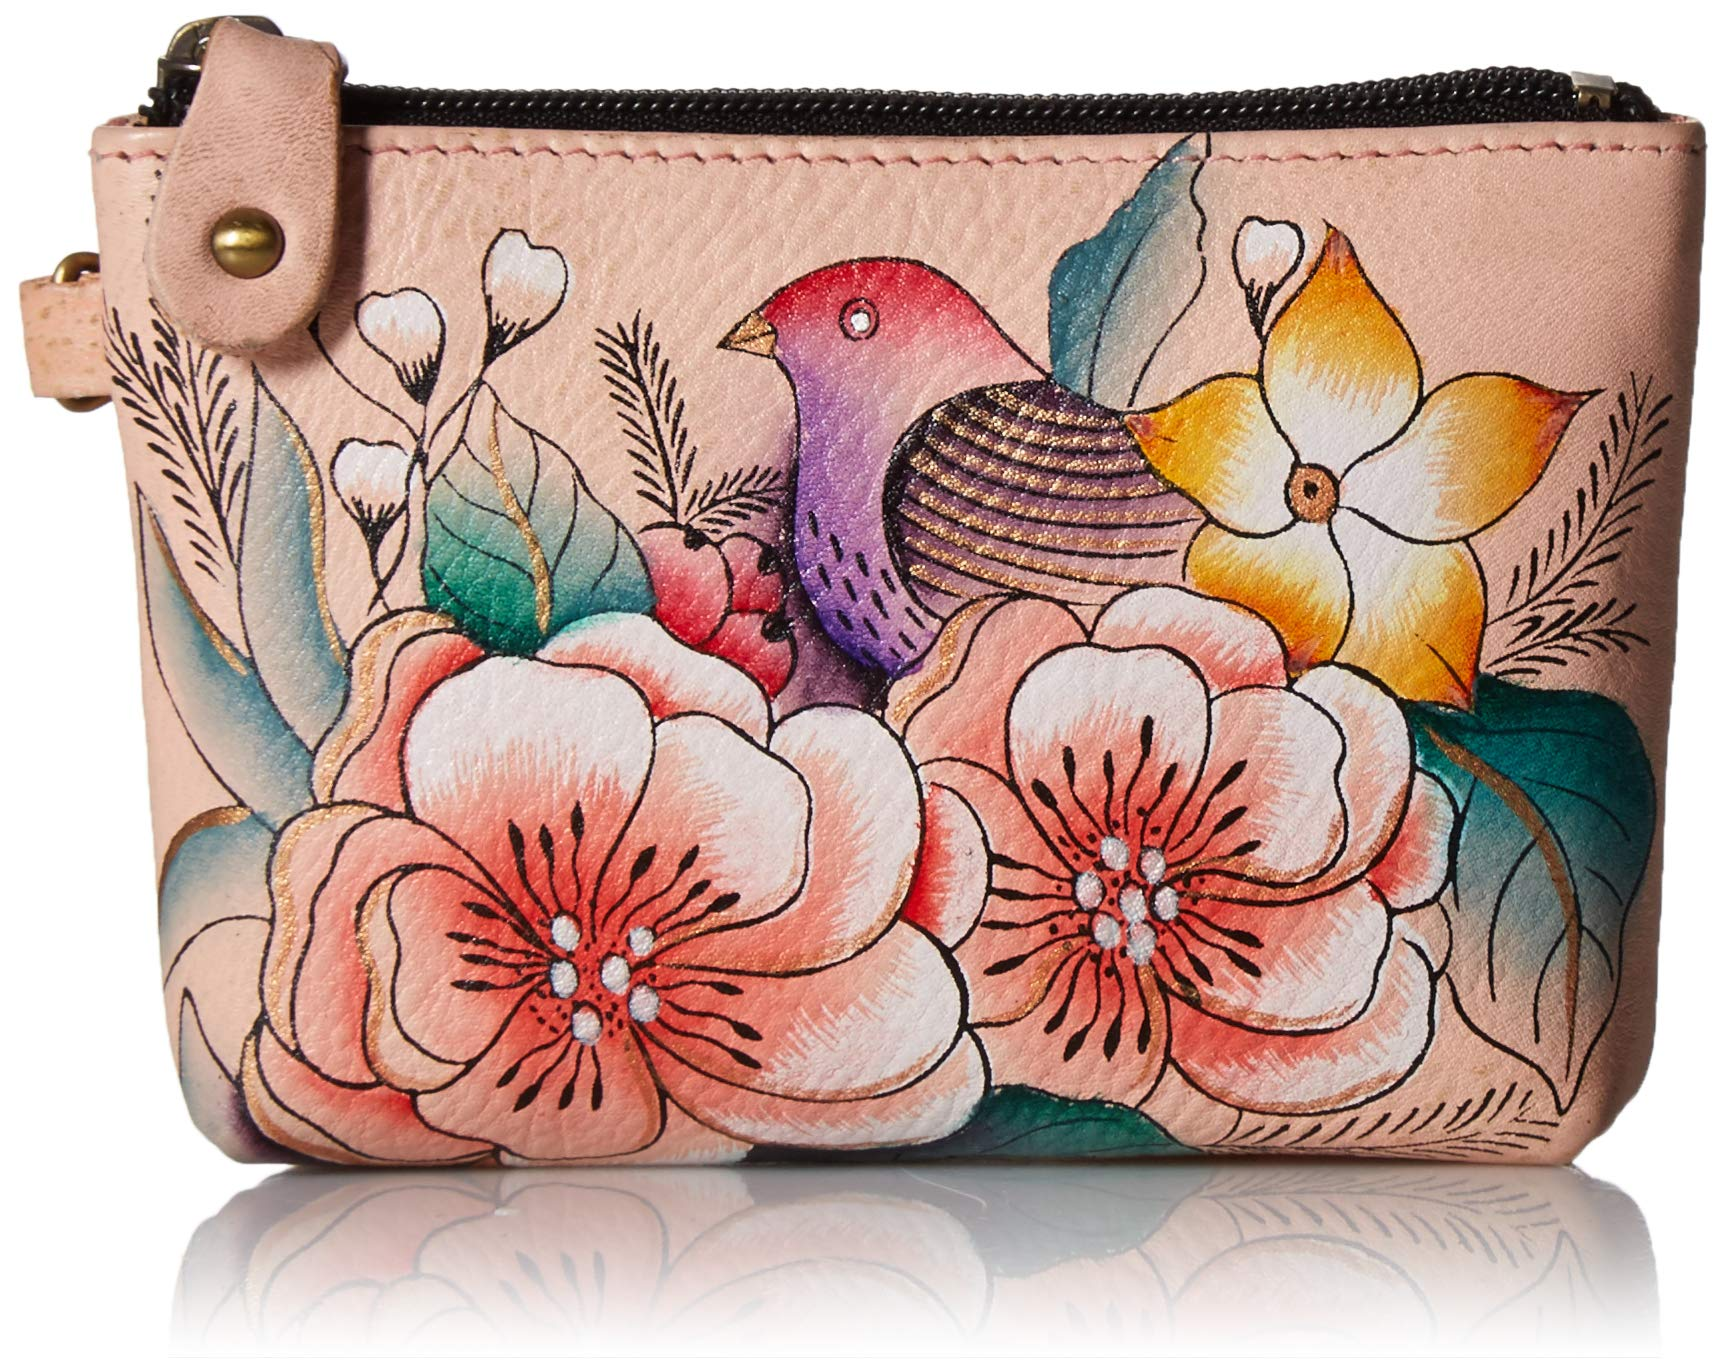 Anna by Anuschka Hand Painted Leather Women's Coin Pouch, Vintage Garden by Anna by Anuschka